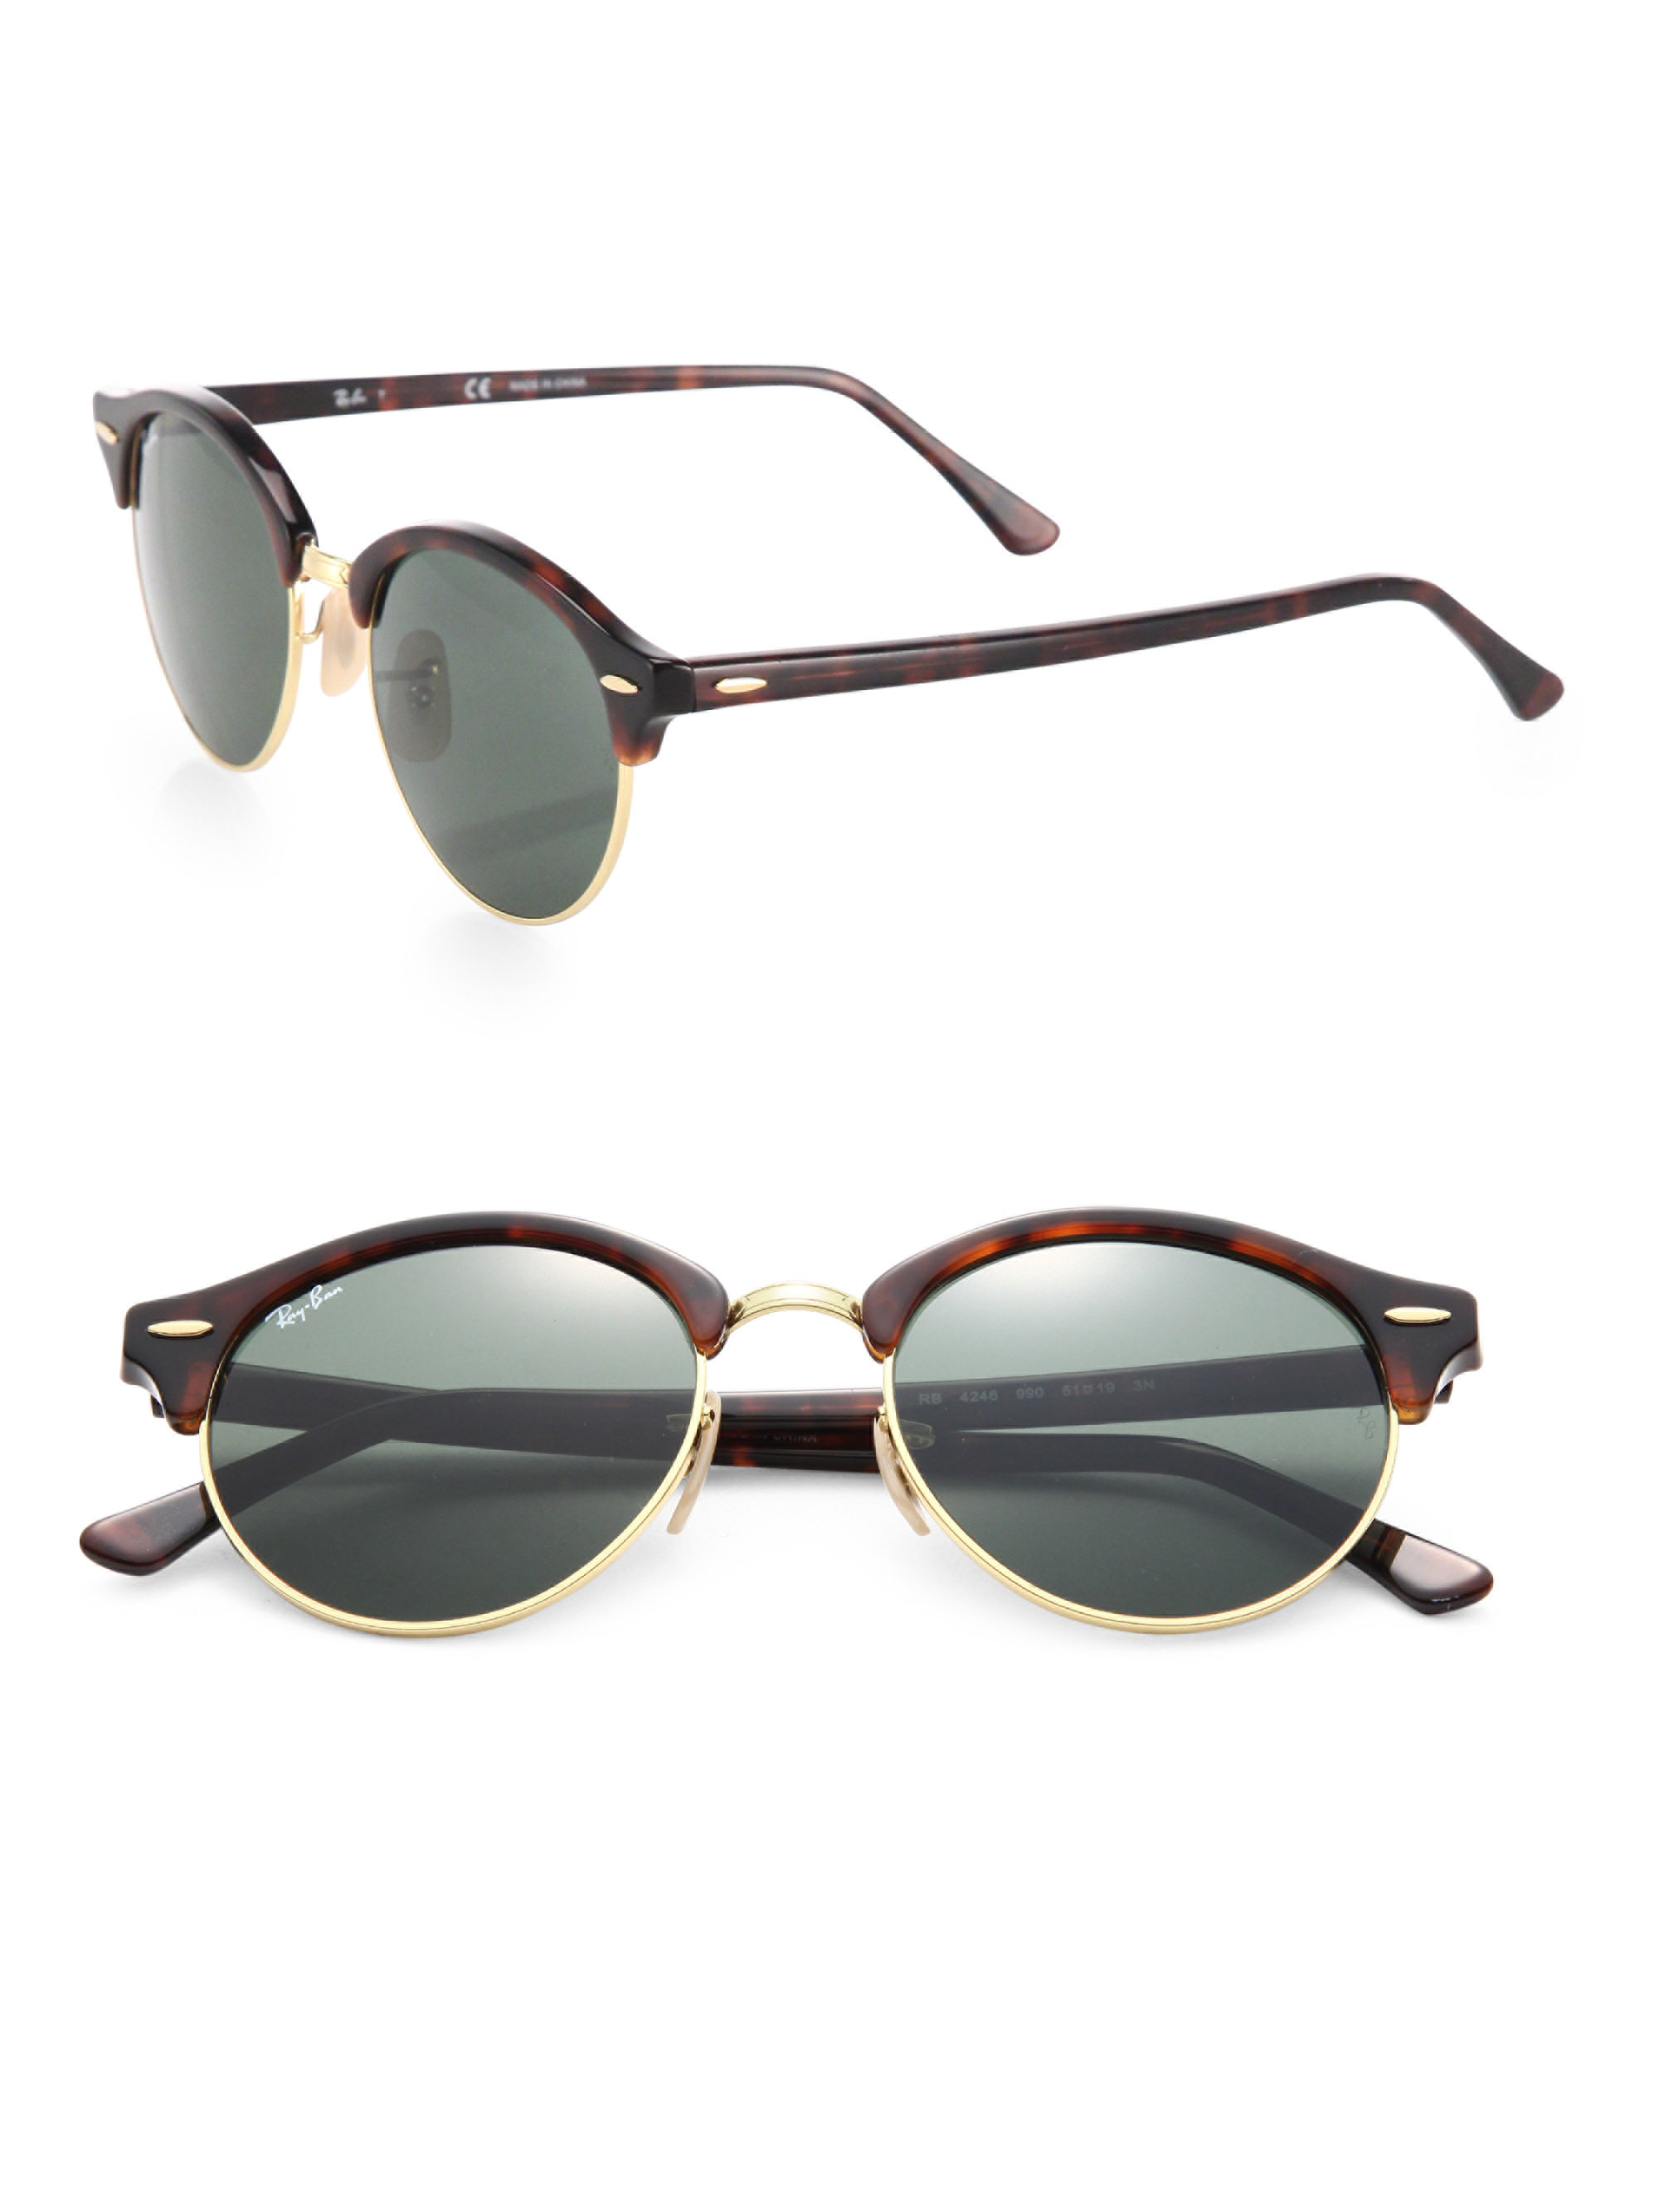 1df46e67396 Chennai Express Ray Ban Sunglasses Outlet « One More Soul